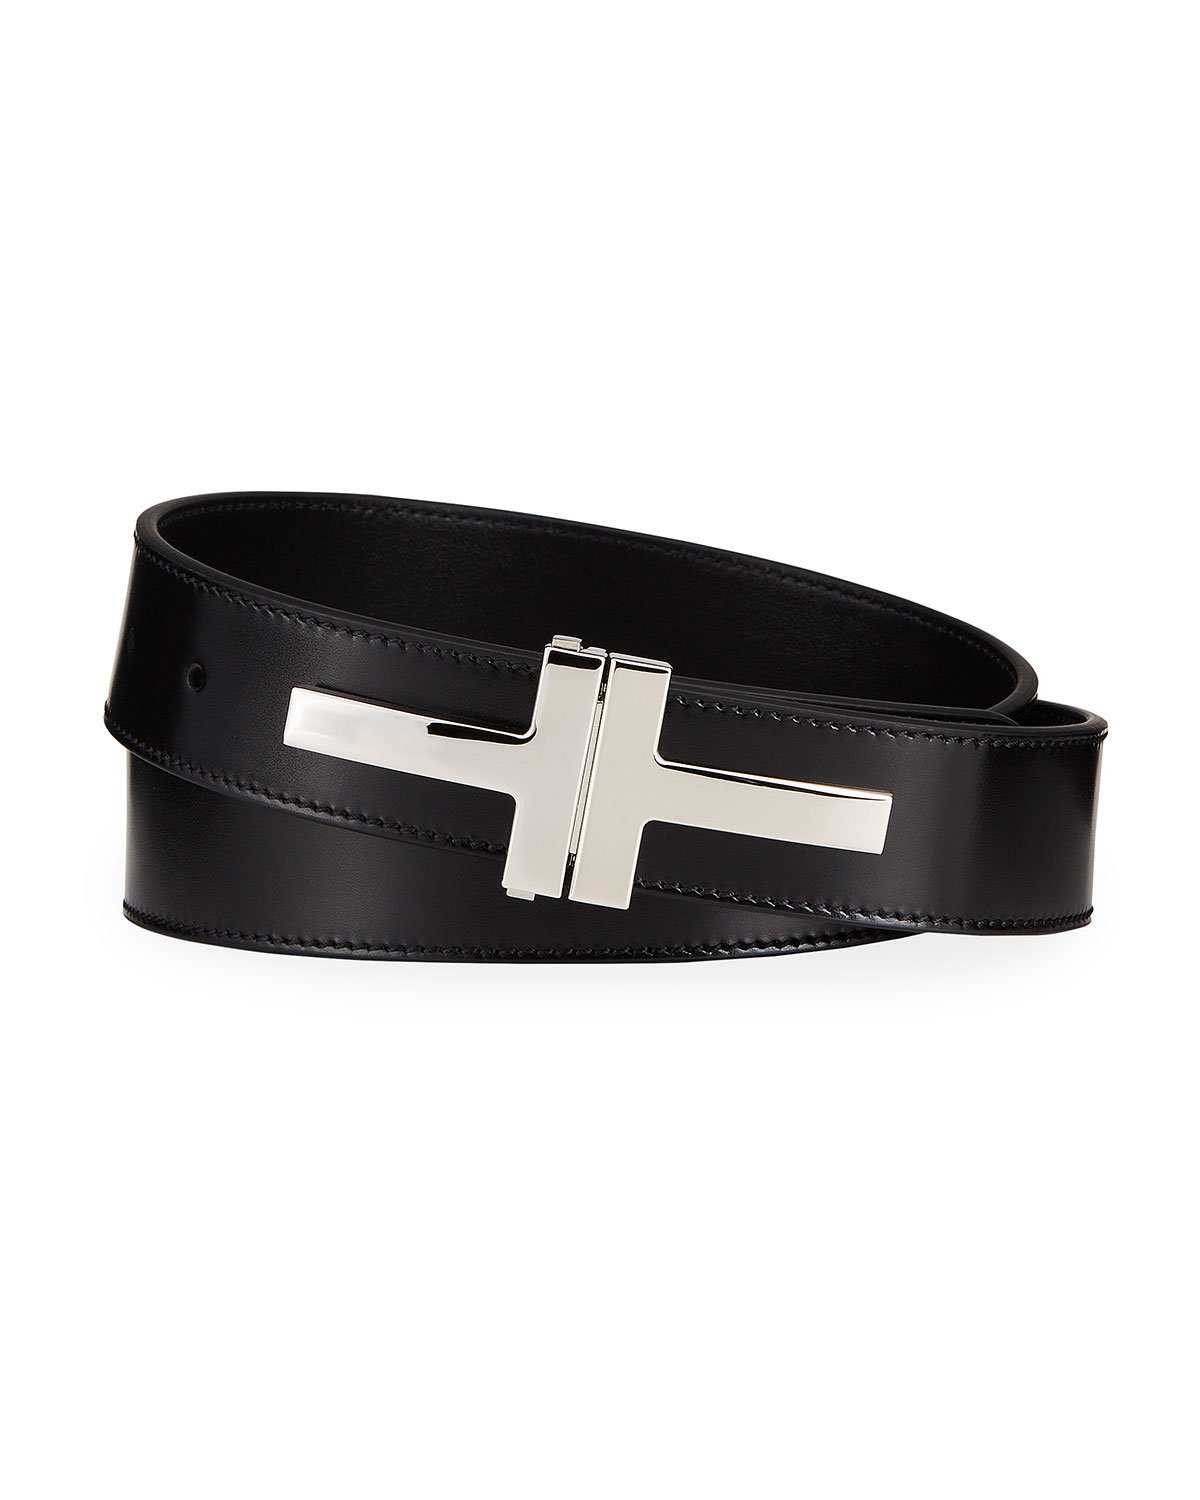 Tom Ford MEN'S DOUBLE T LEATHER BELT